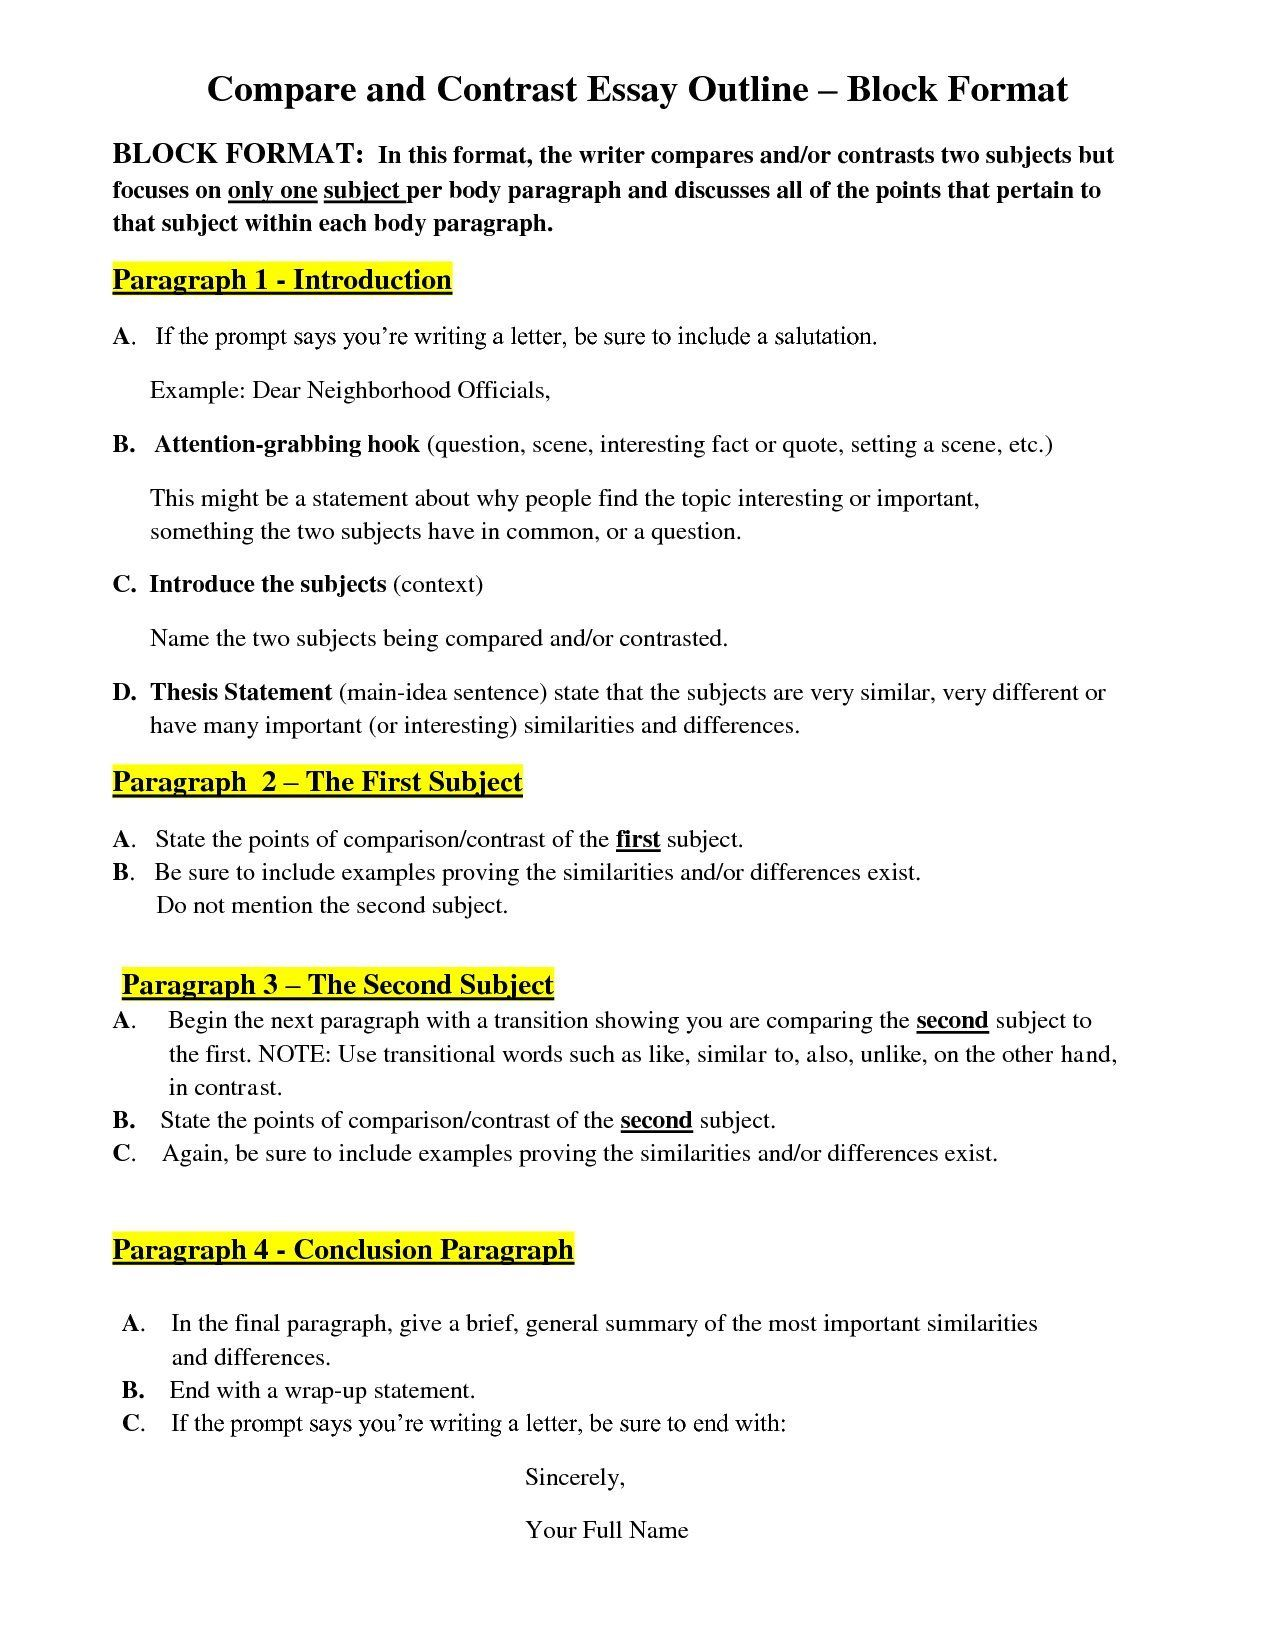 007 Compare And Contrast Essay Frightening Sample 4th Grade Introduction Paragraph Ideas Full